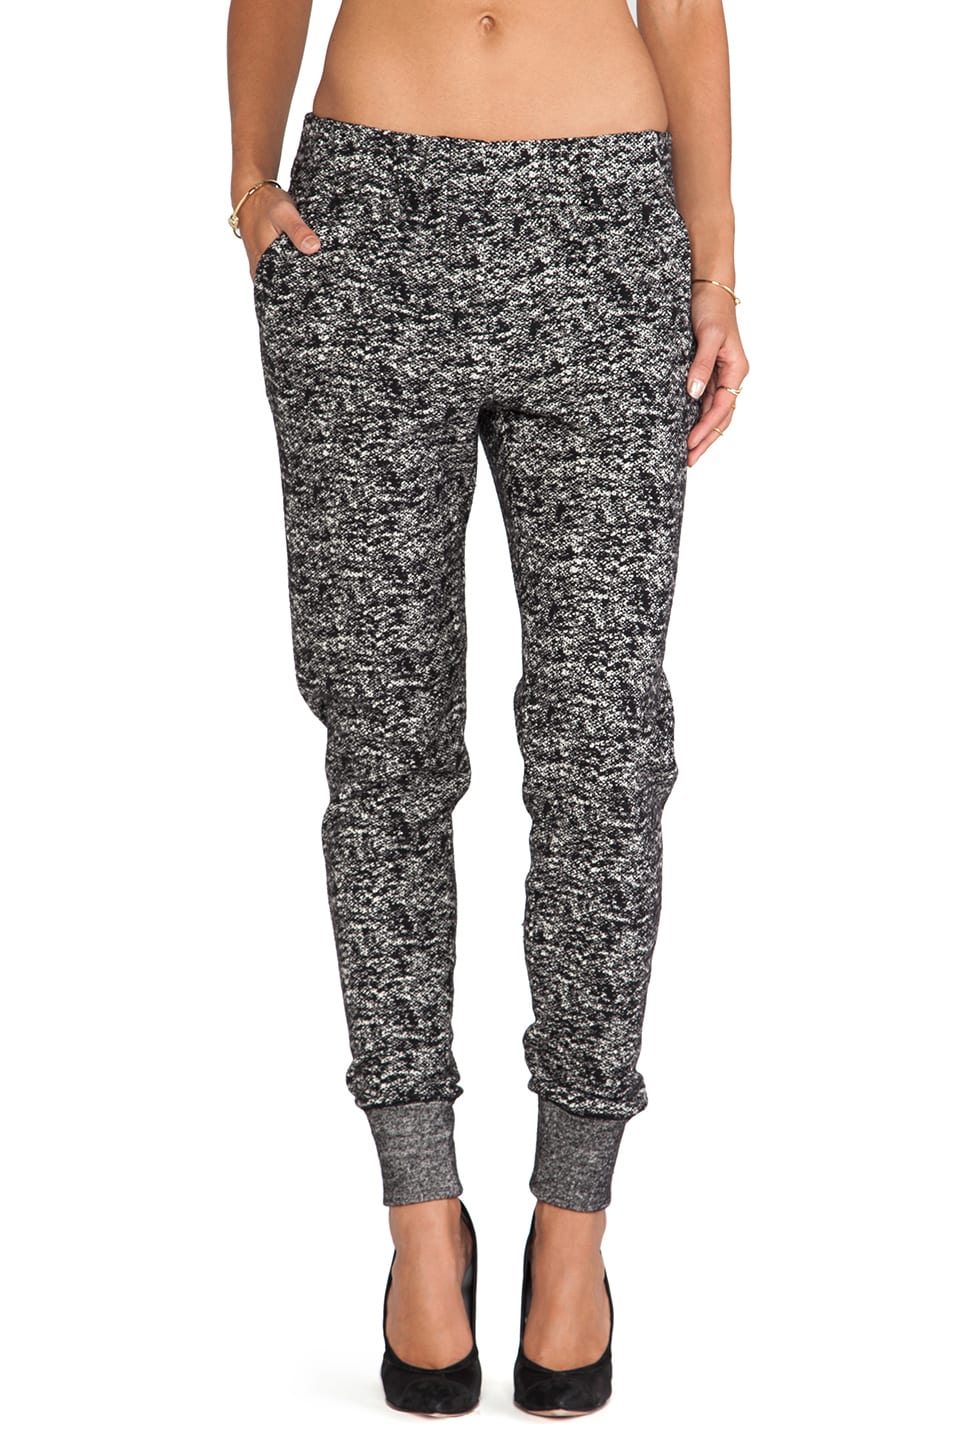 Halston Heritage Tapered Leg Tweed Knit Sweatpant in Black/Bone